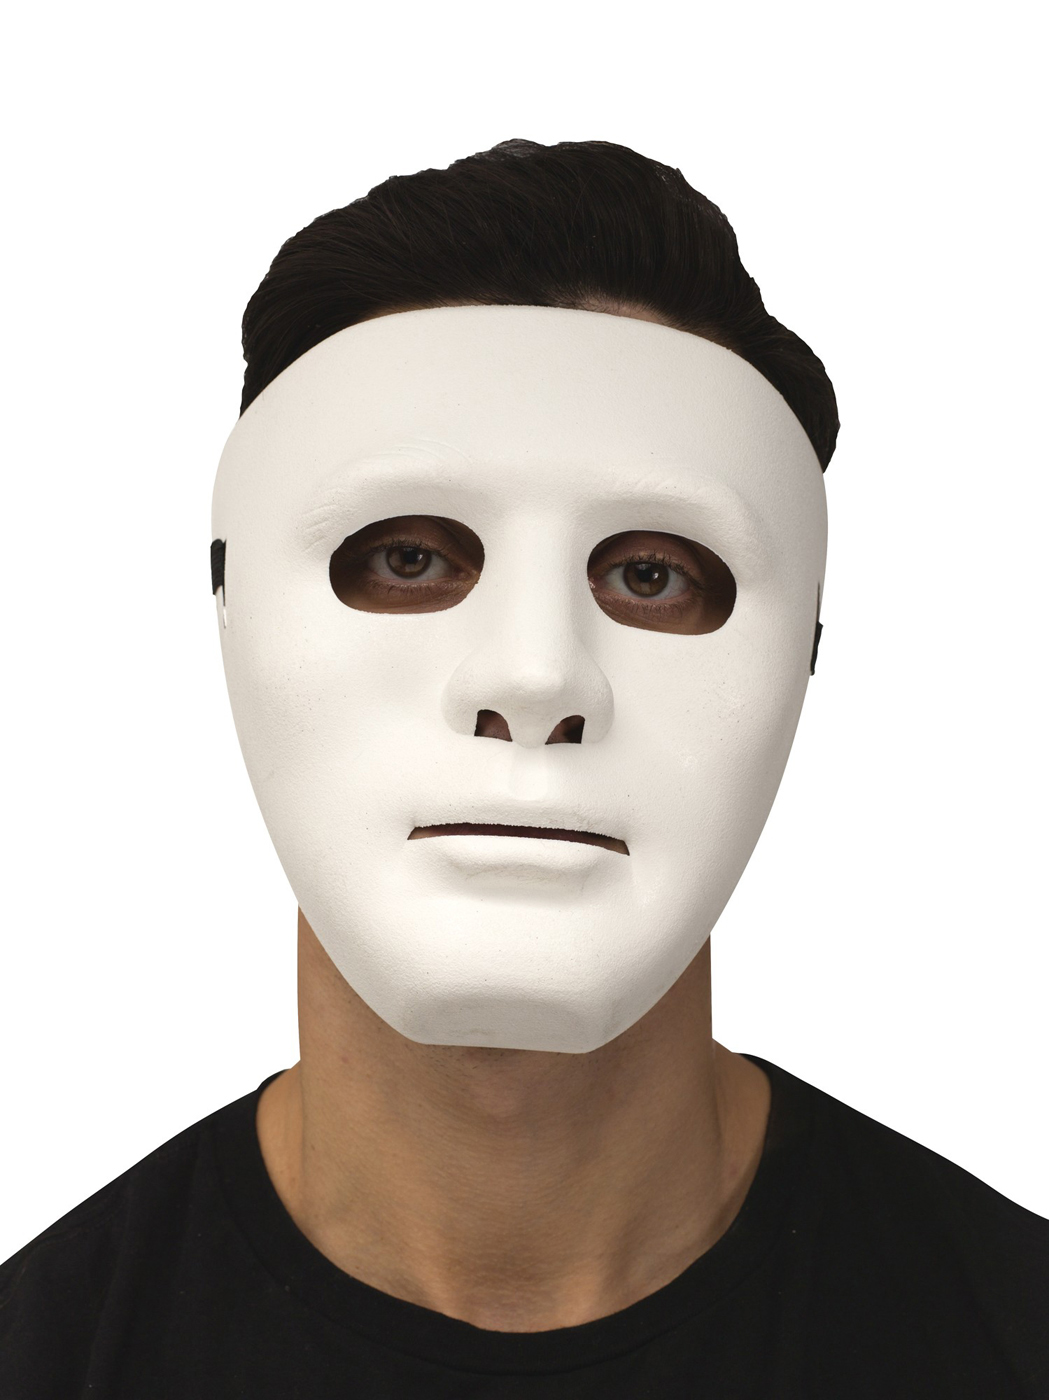 blank face adult plastic purge halloween costume mask | ebay